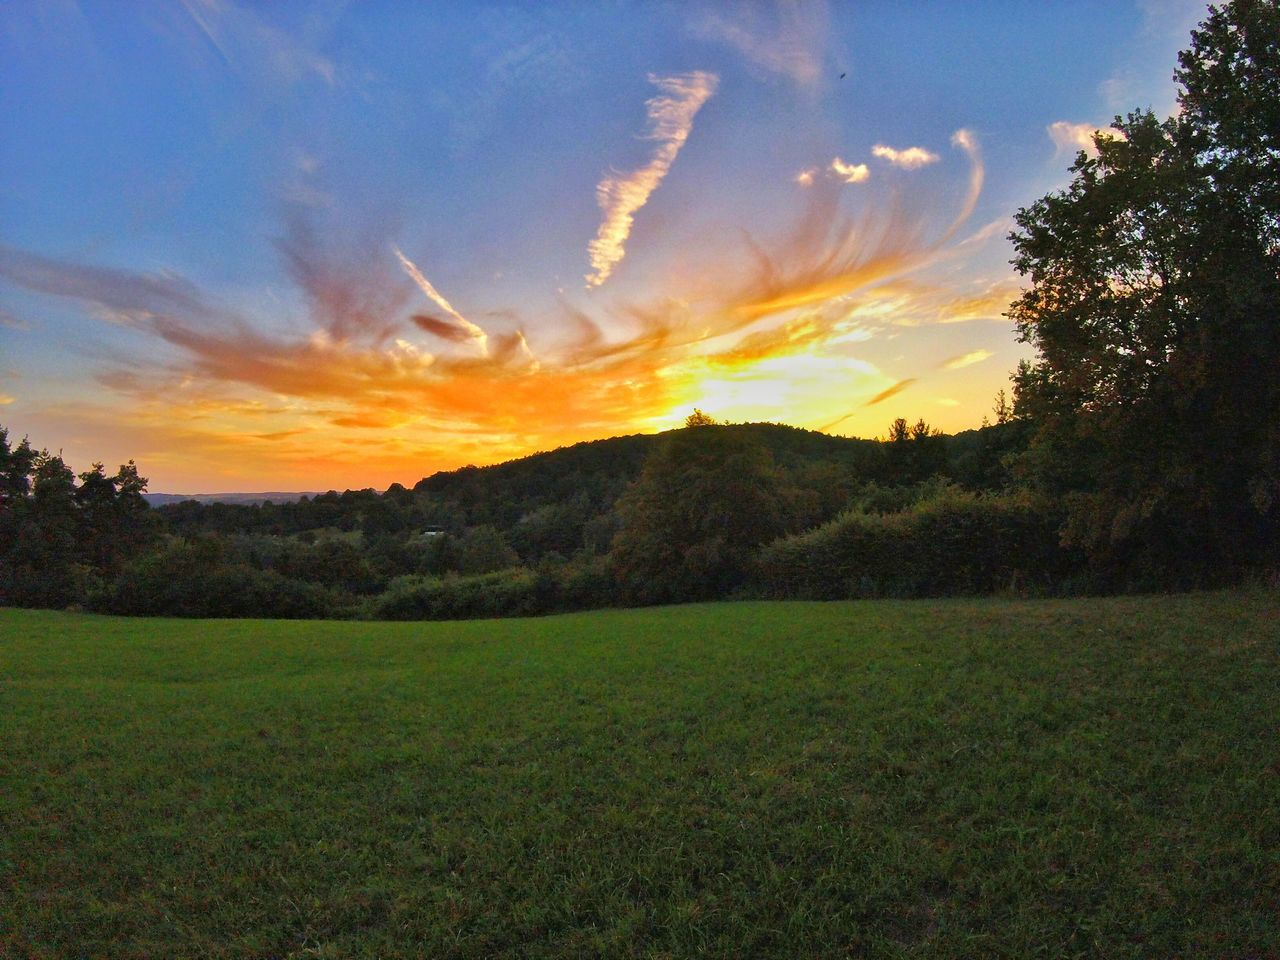 Gopro Session Gopro Goprooftheday Goprohero4 Goprophotography Sun Sunshine Tree Trees Snapseed Trees And Sky Sunset Green Grass Cloud Clouds And Sky Cloudart EyEmNewHere